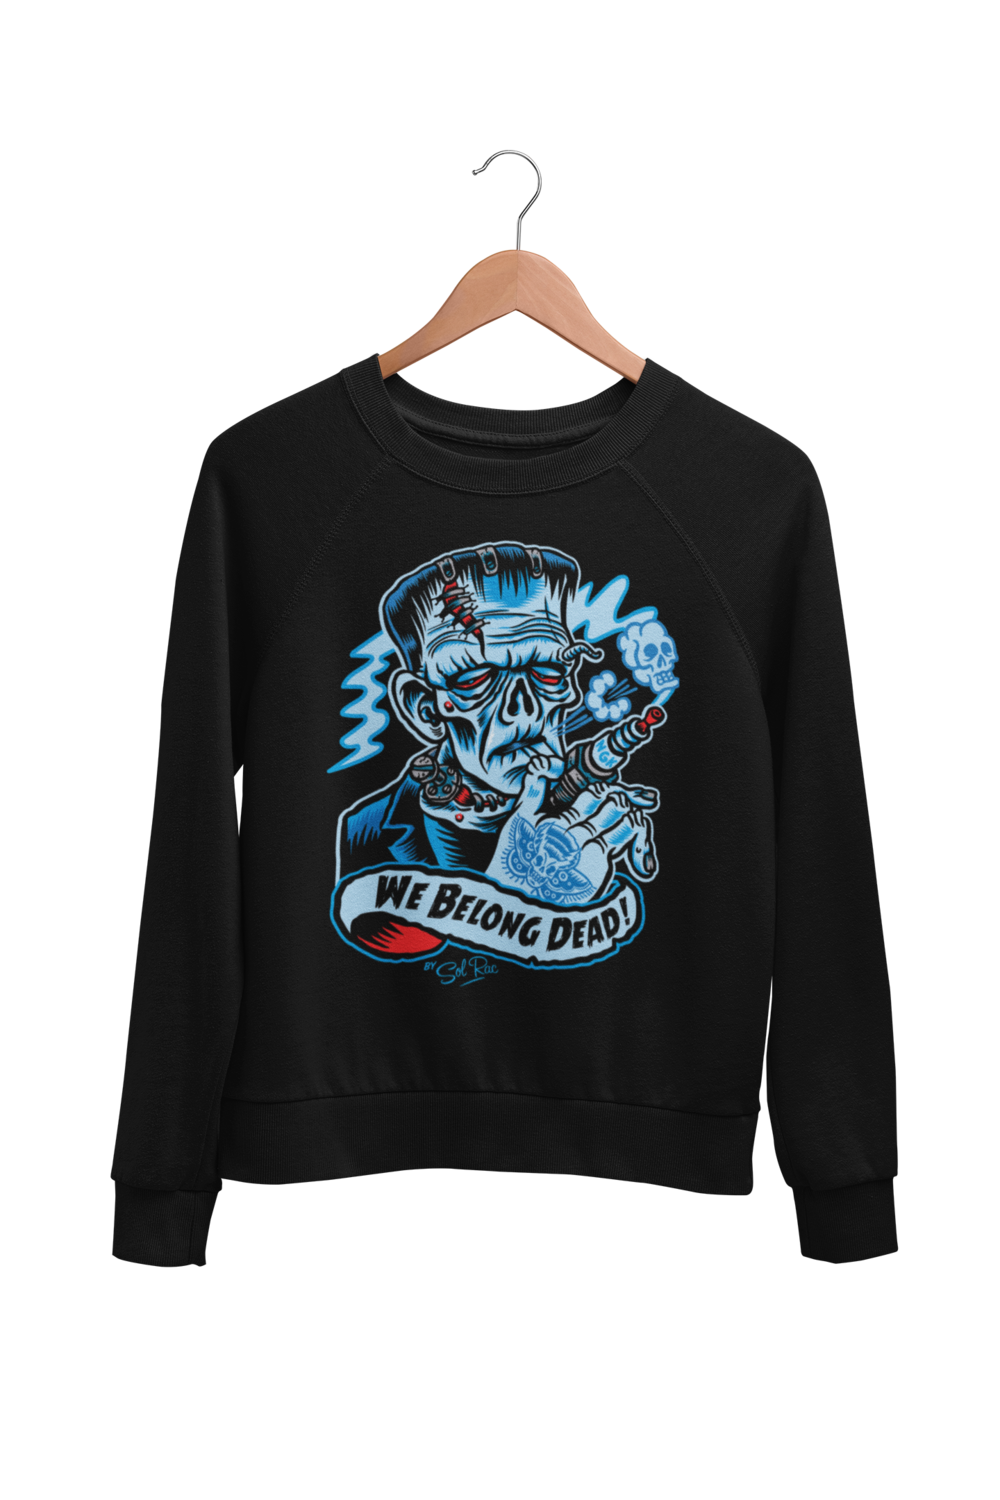 WE BELONG DEAD SWEATSHIRT UNISEX by BY SOL RAC